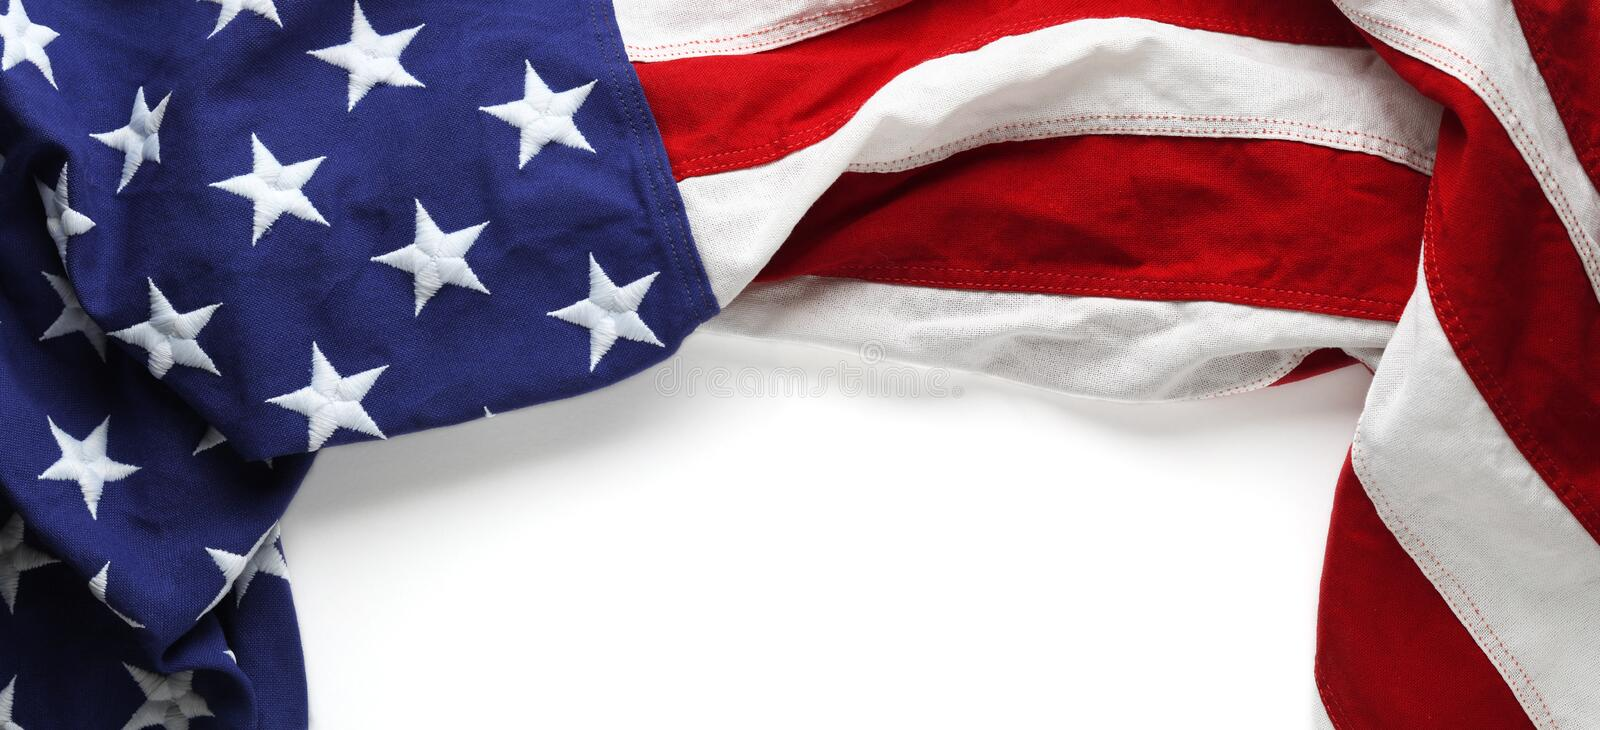 American flag for Memorial day or Veteran`s day background. Red, white, and blue American flag for Memorial day or Veteran`s day background stock images